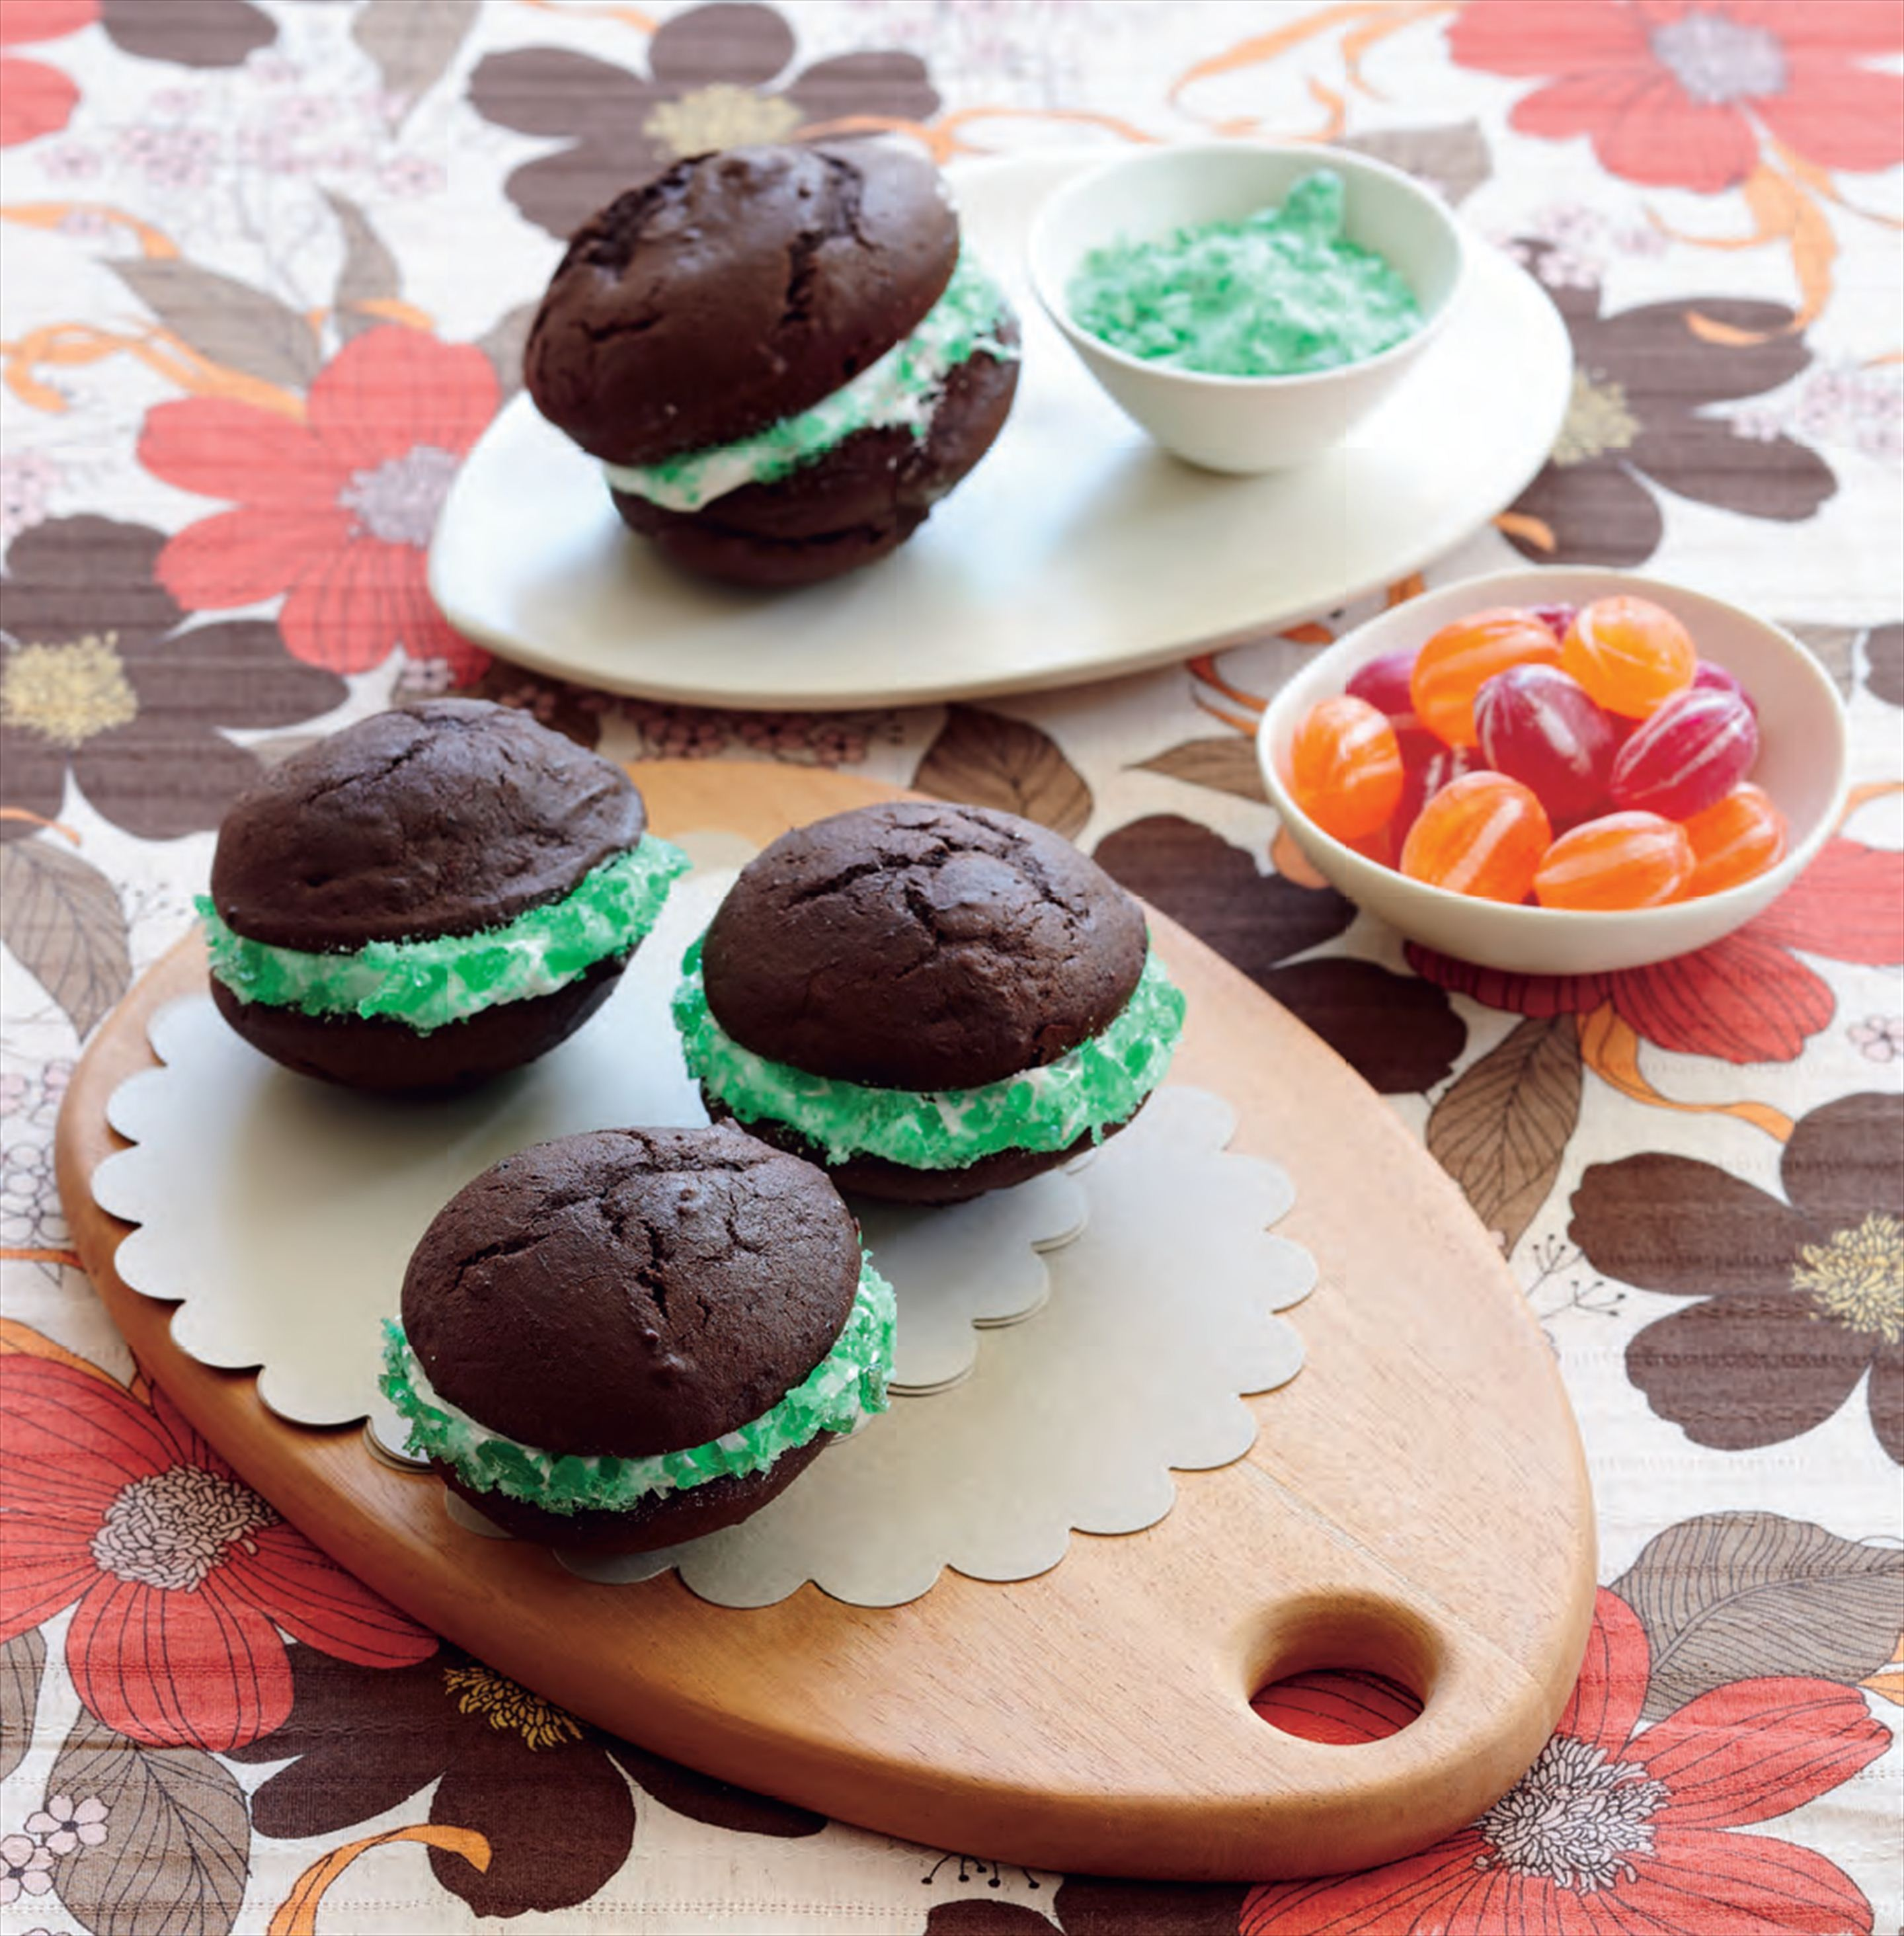 Choc-mint whoopie pies with marshmallow frosting